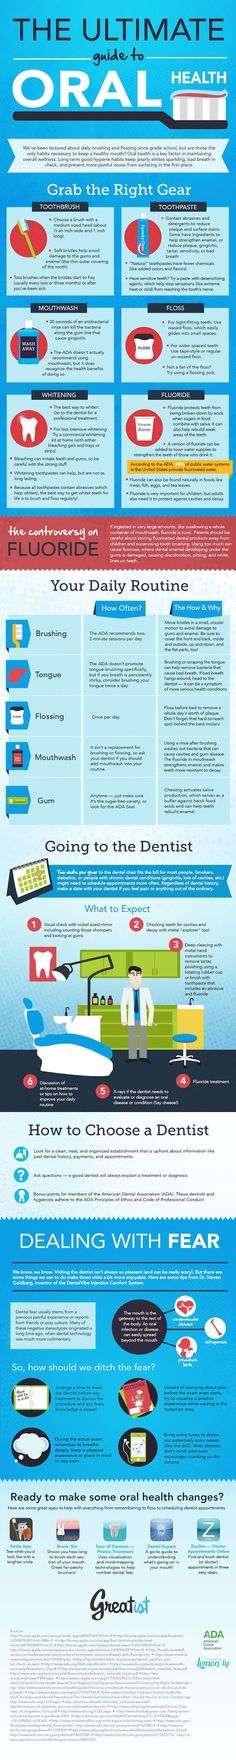 The Ultimate Guide to Oral Health #healthyteeth #dentalhealth #teethcare http://www.atalskinsolutions.com/